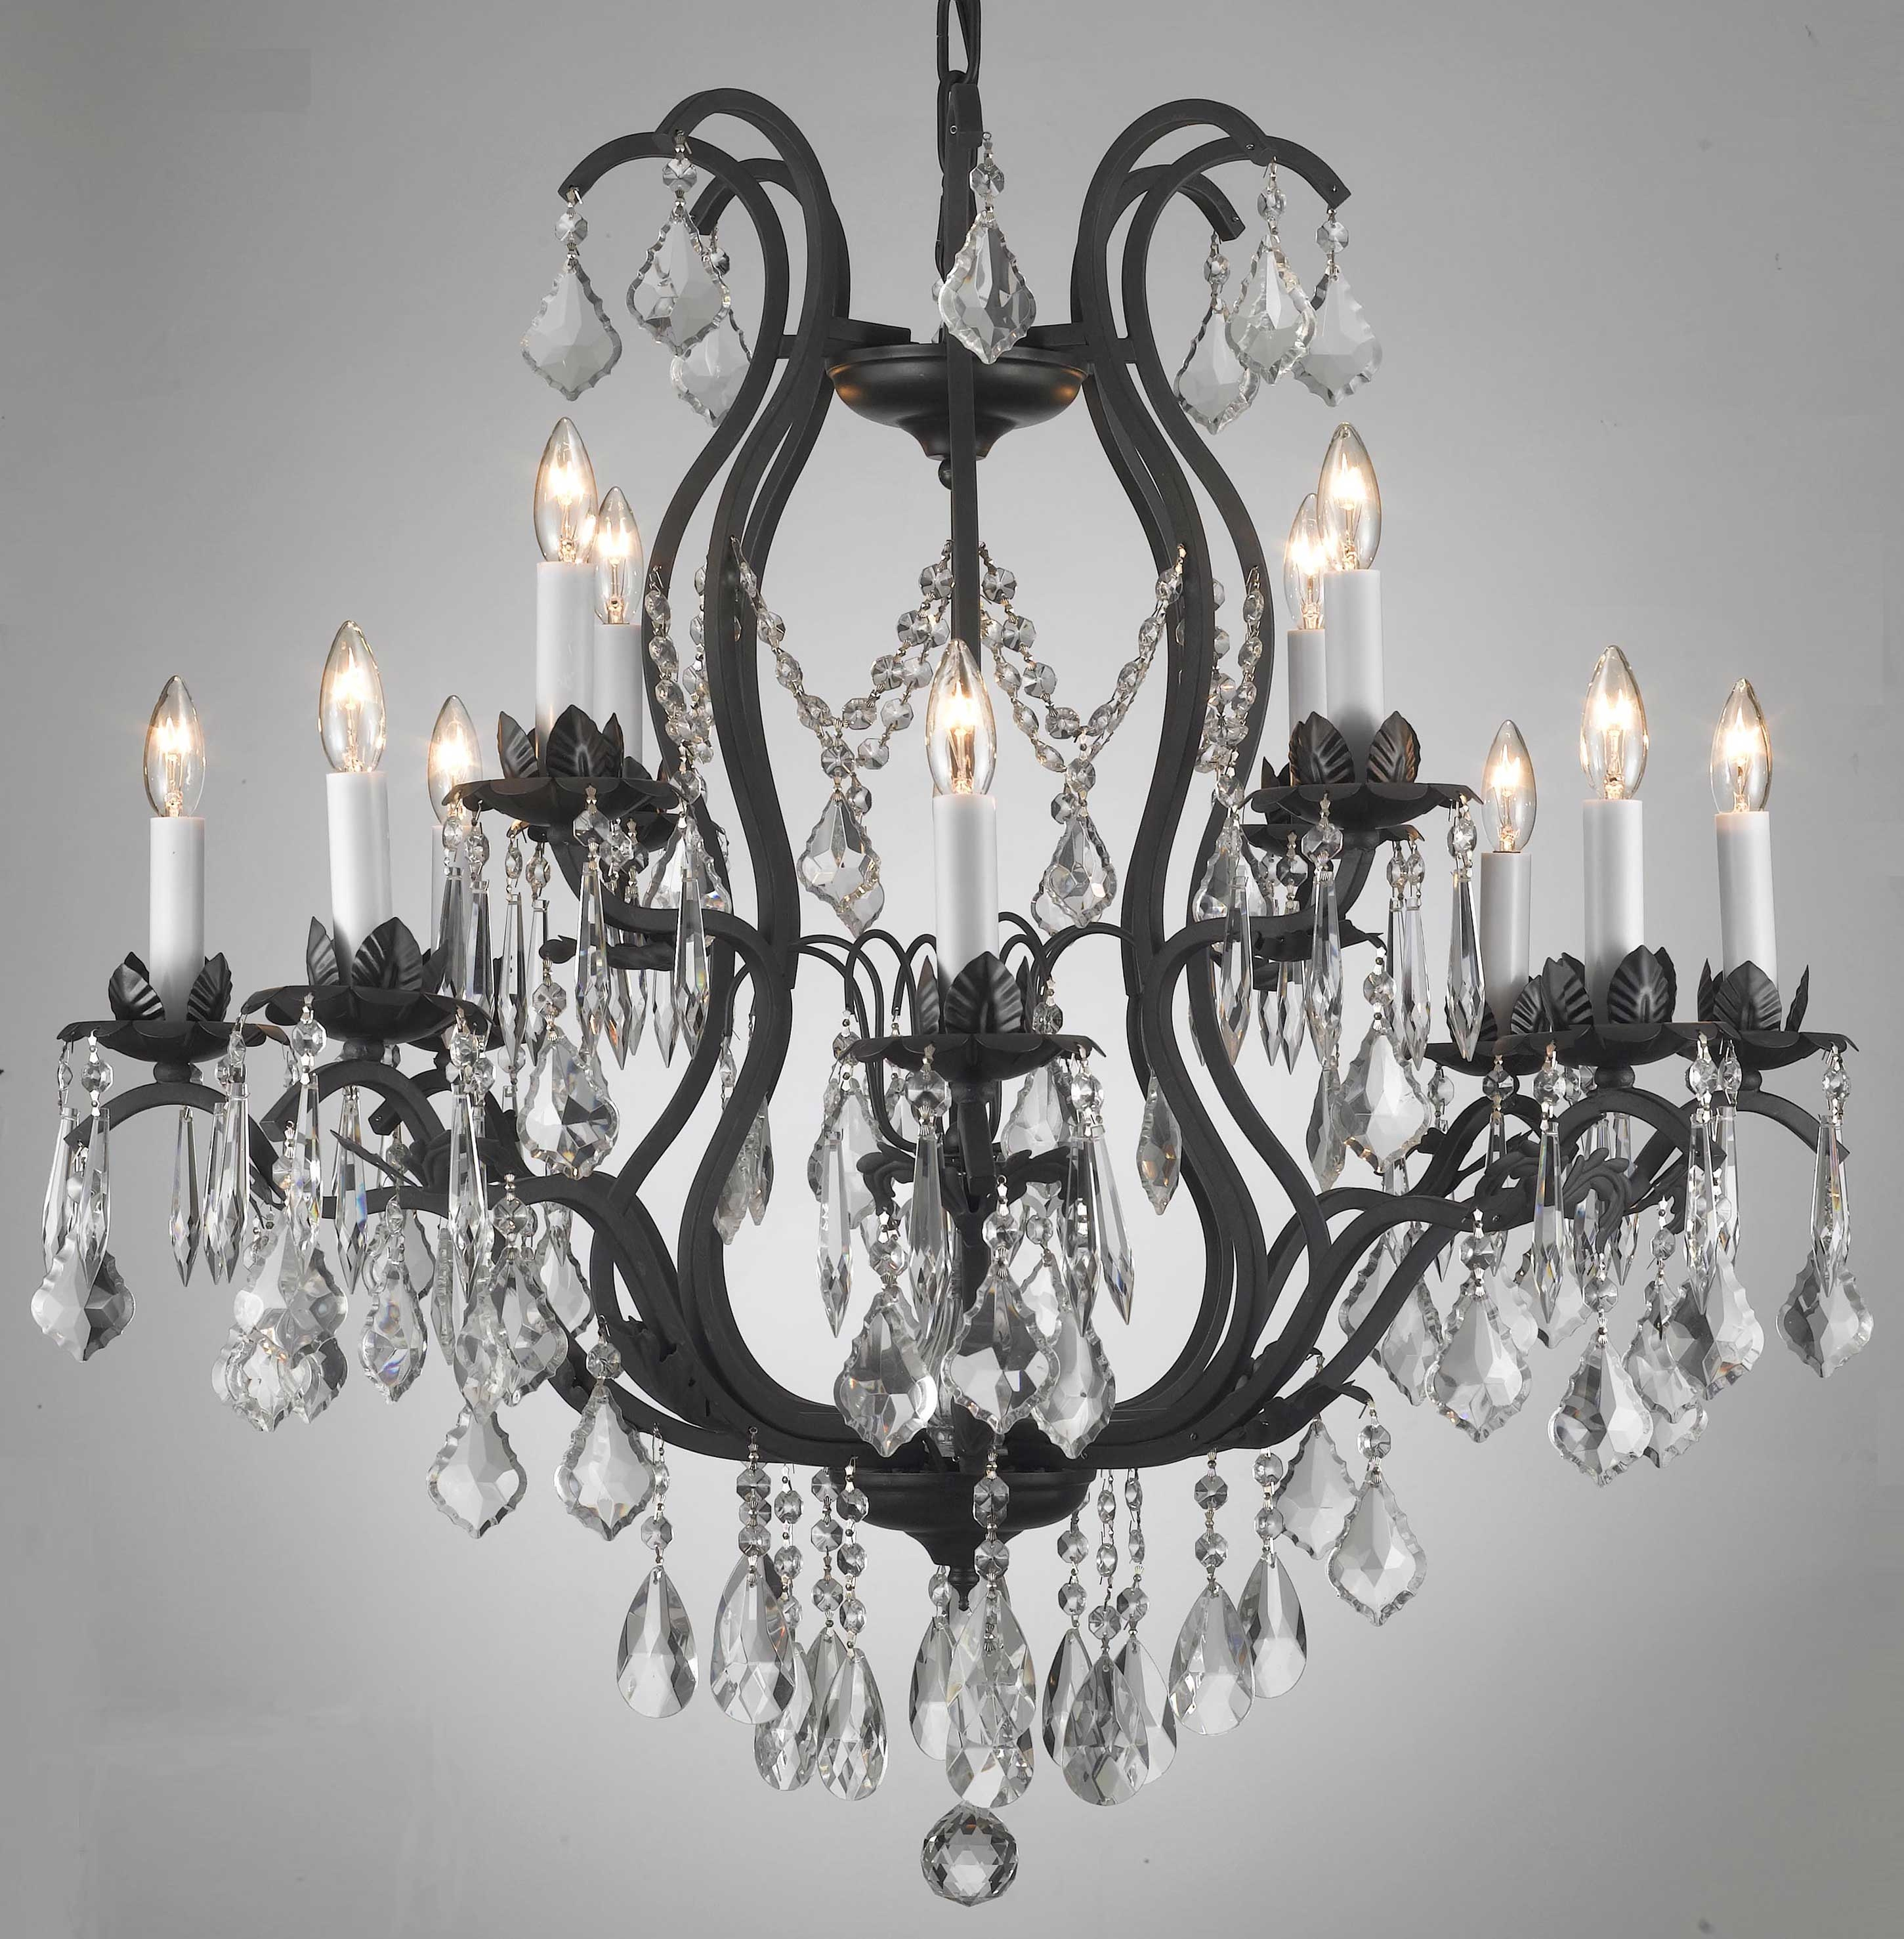 Marvelous Chandeliers With Chandeliers Ceiling Circa Lighting For Intended For Trendy Chandeliers (#9 of 12)